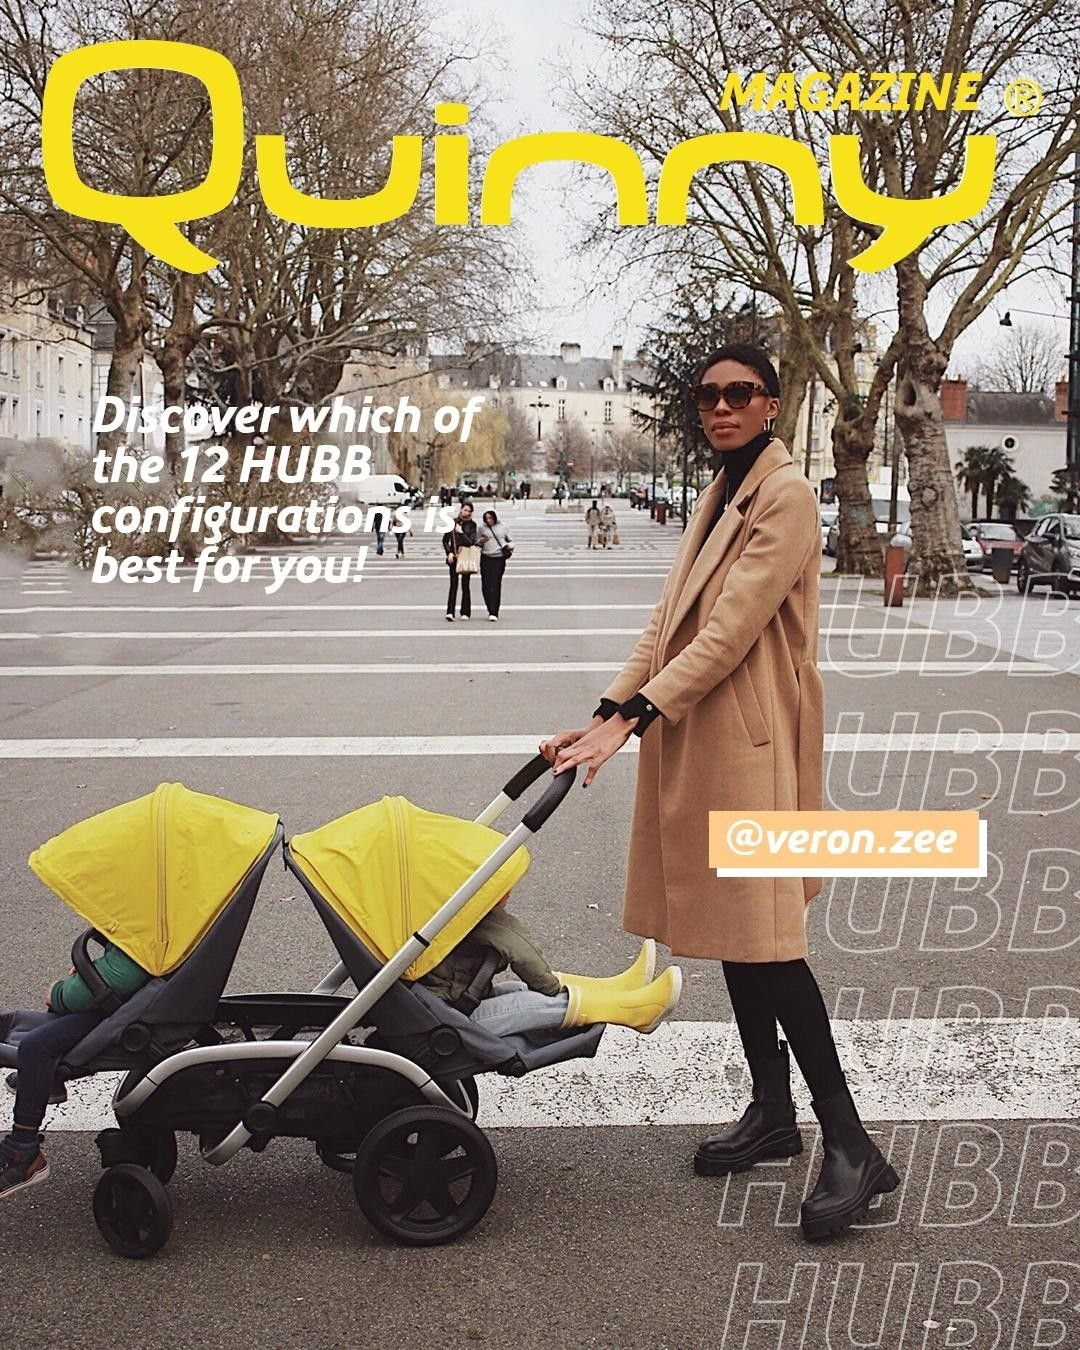 PSSST! As promised there is a new issue of the Quinny